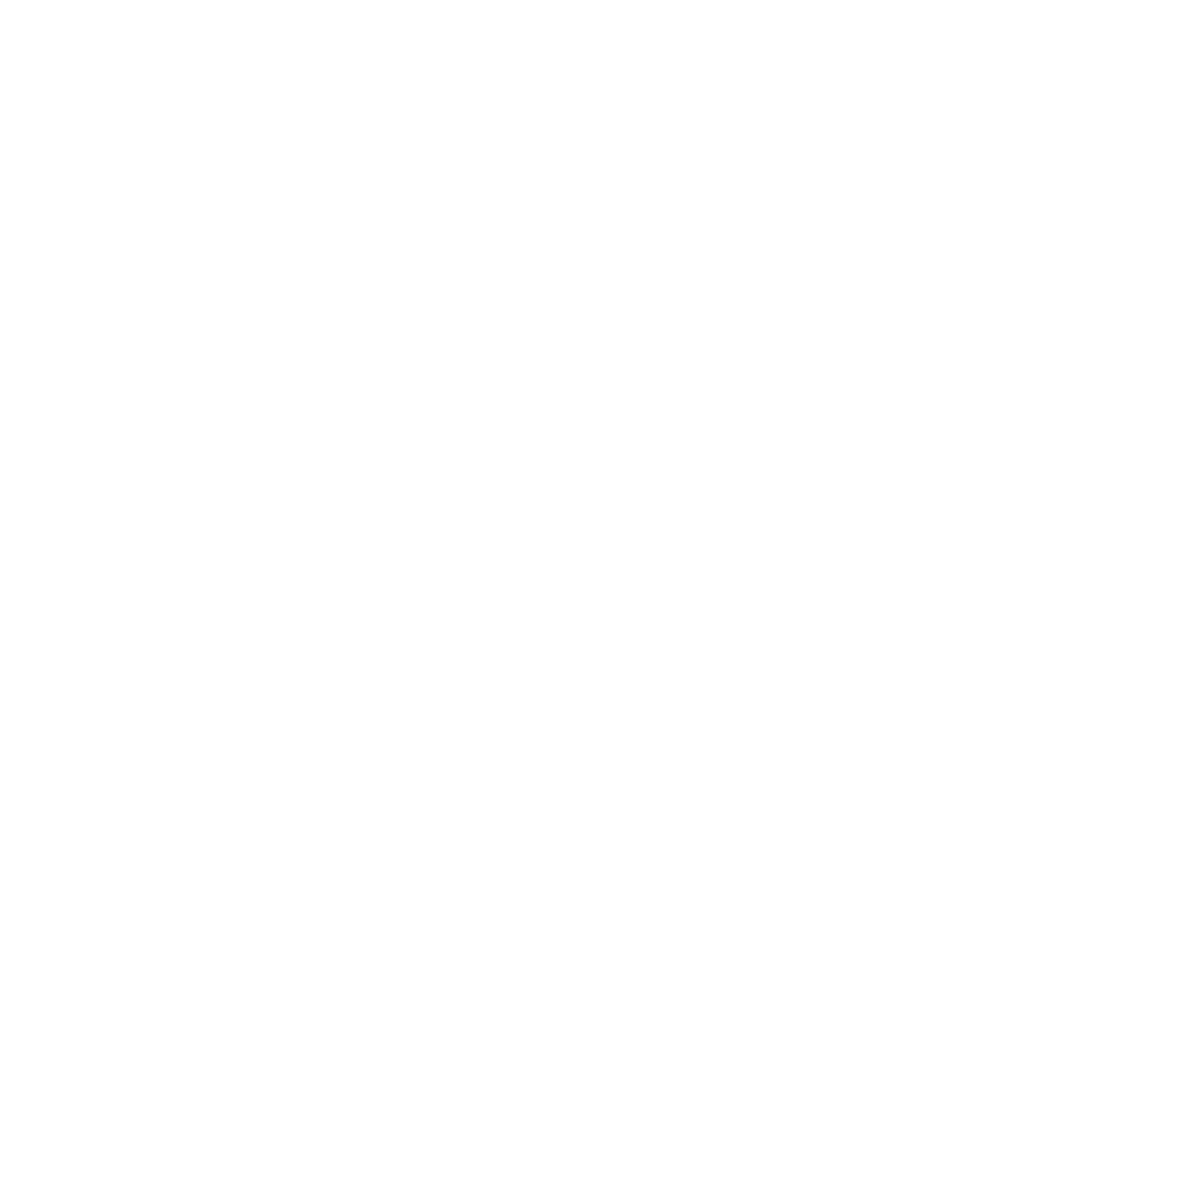 http://www.swanseadentistry.com/wp-content/uploads/2015/11/dentures-white.png